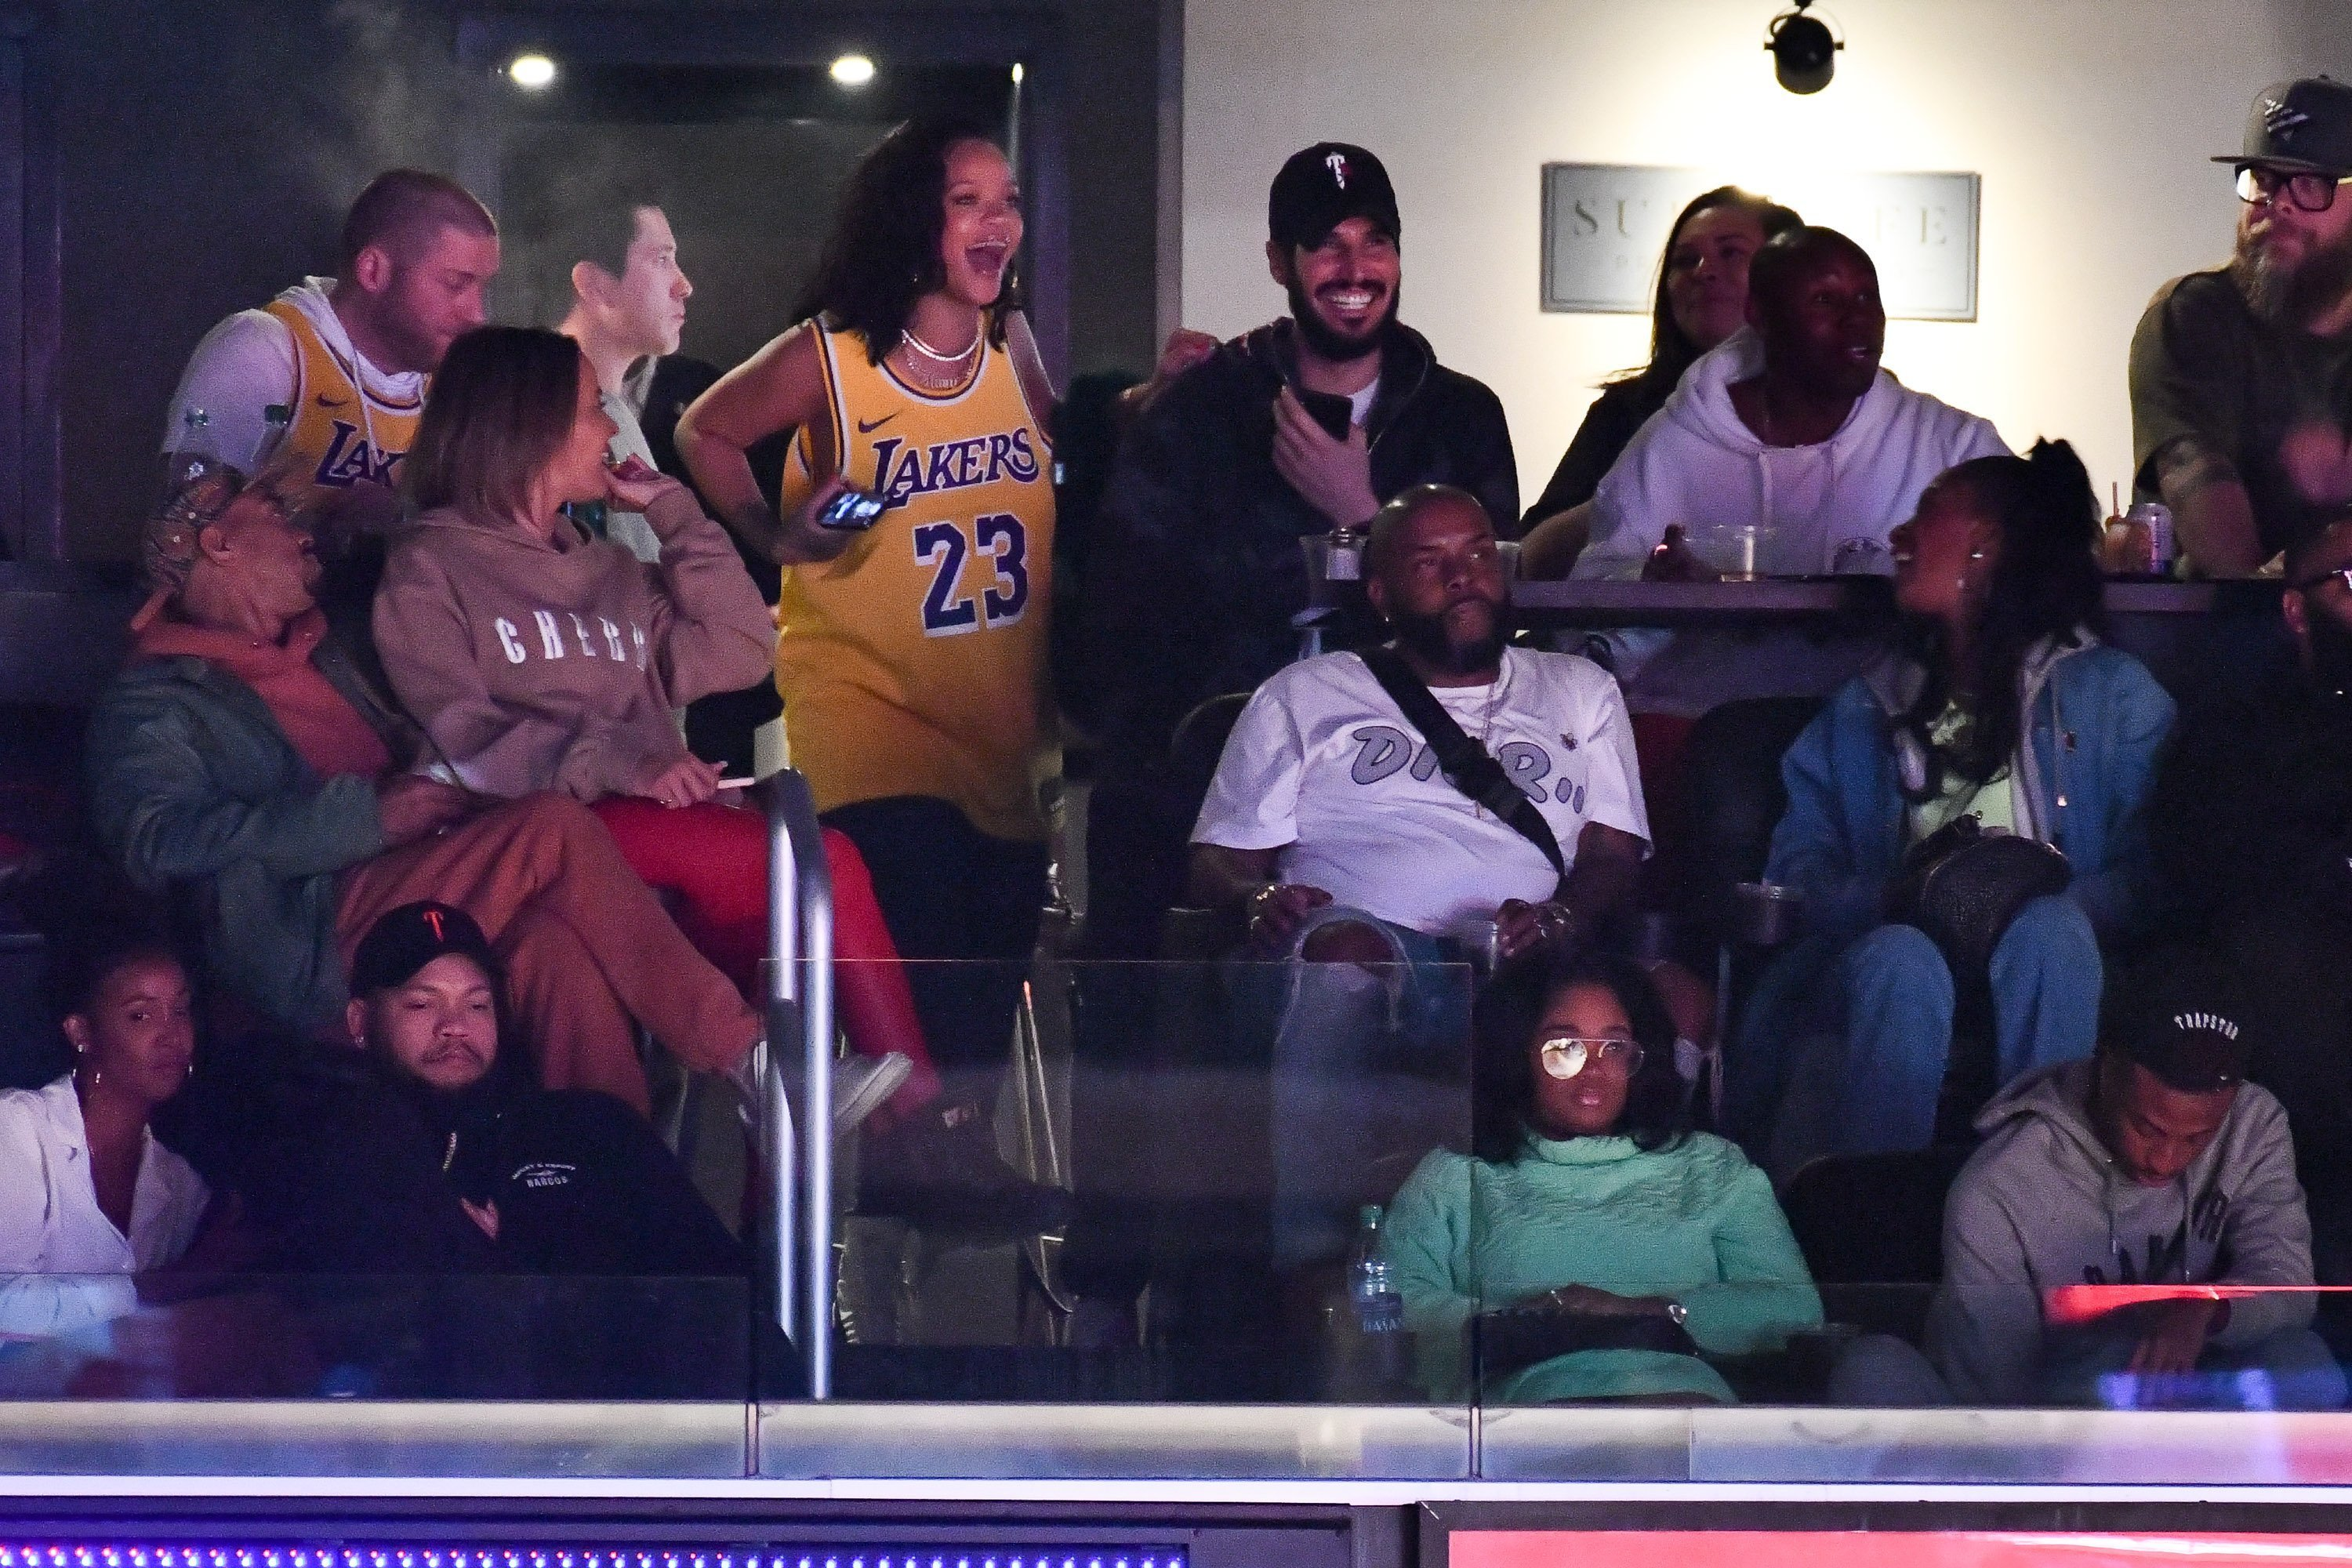 Rihanna rests an arm on her rumored beau, Hassan Jameel, at the Staples Center in Los Angeles on Feb. 21, 2019. | Photo: Getty Images.